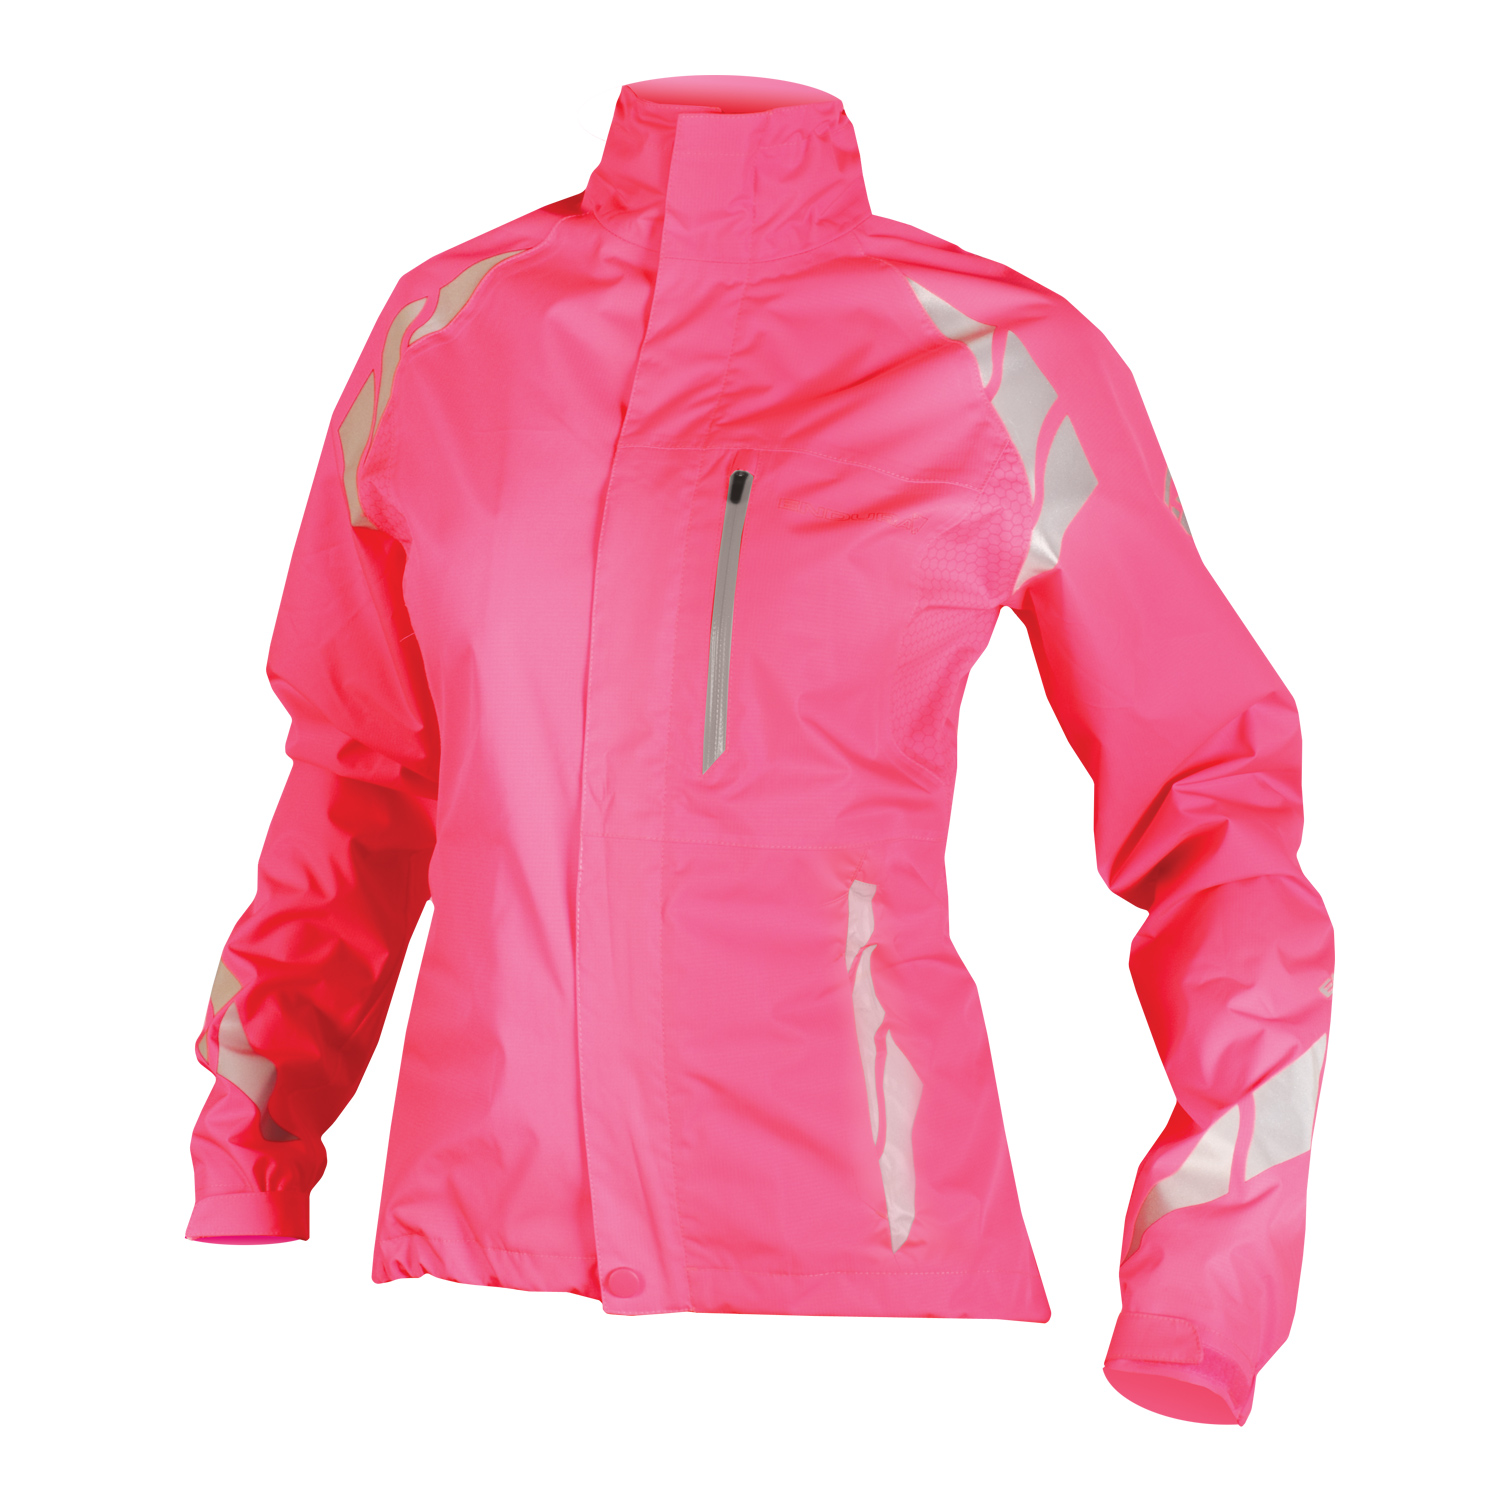 Endura Luminite DL Cykeljakke | Jackets